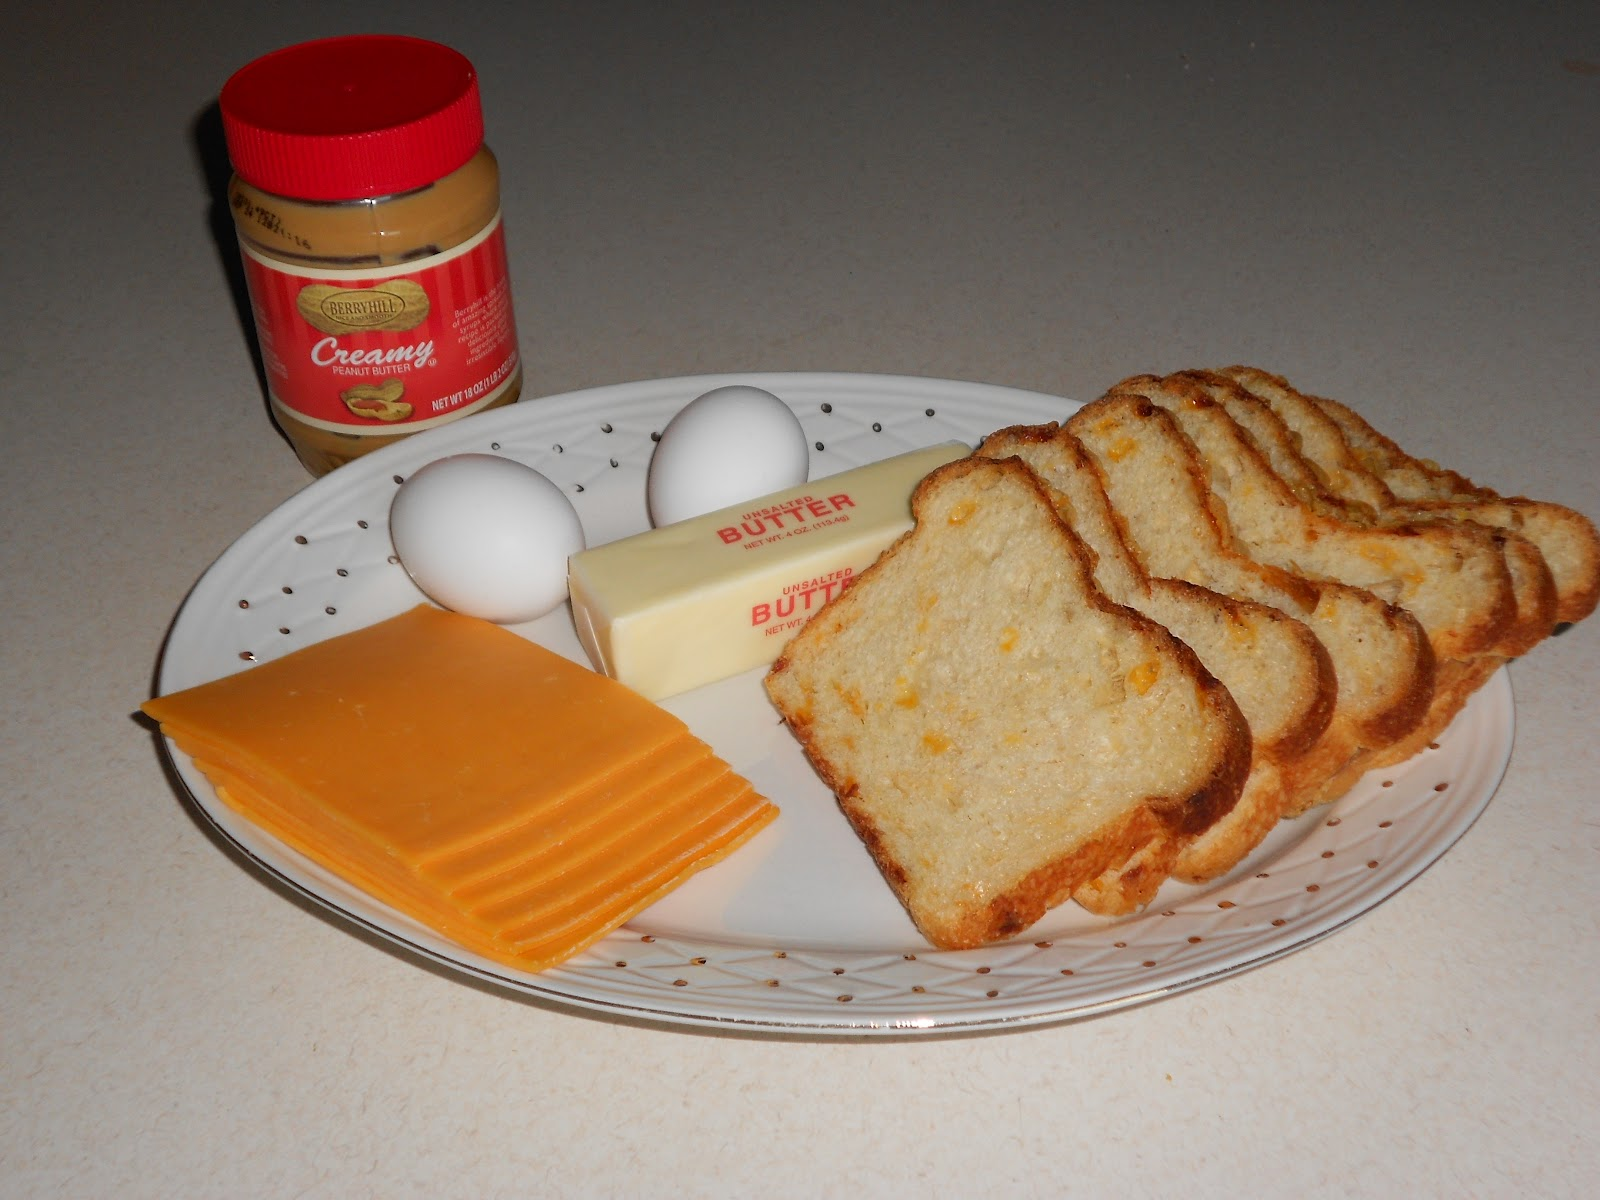 The hot egg melted not only the cheese, but also the peanutbutter ...